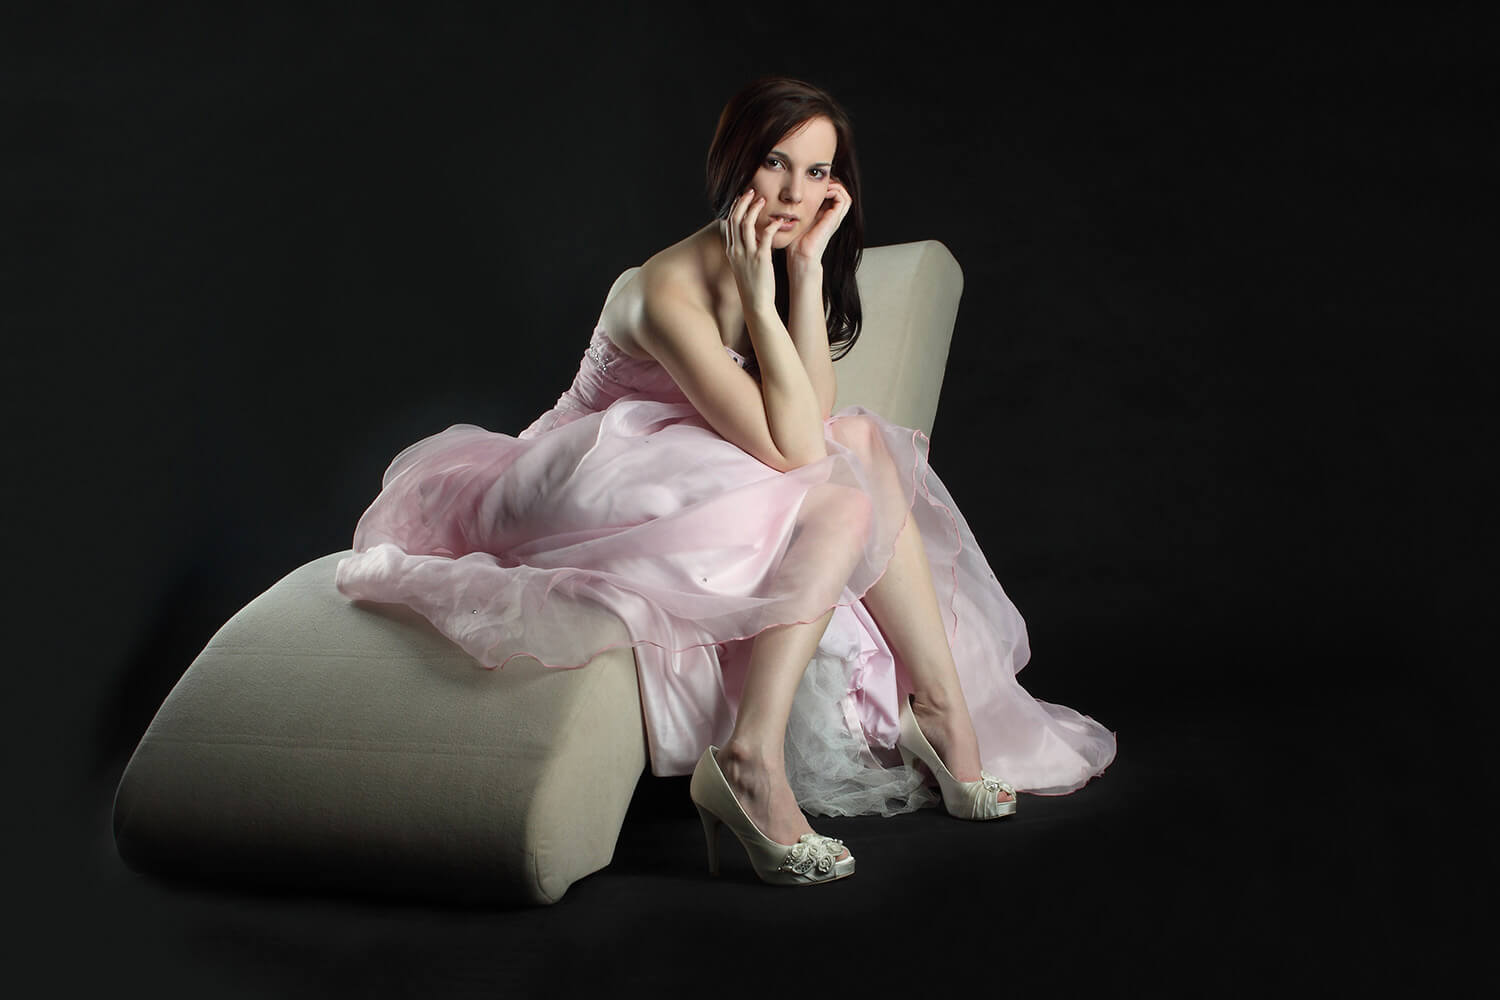 fashion photo of a woman in a pink evening dress sitting on a sofa